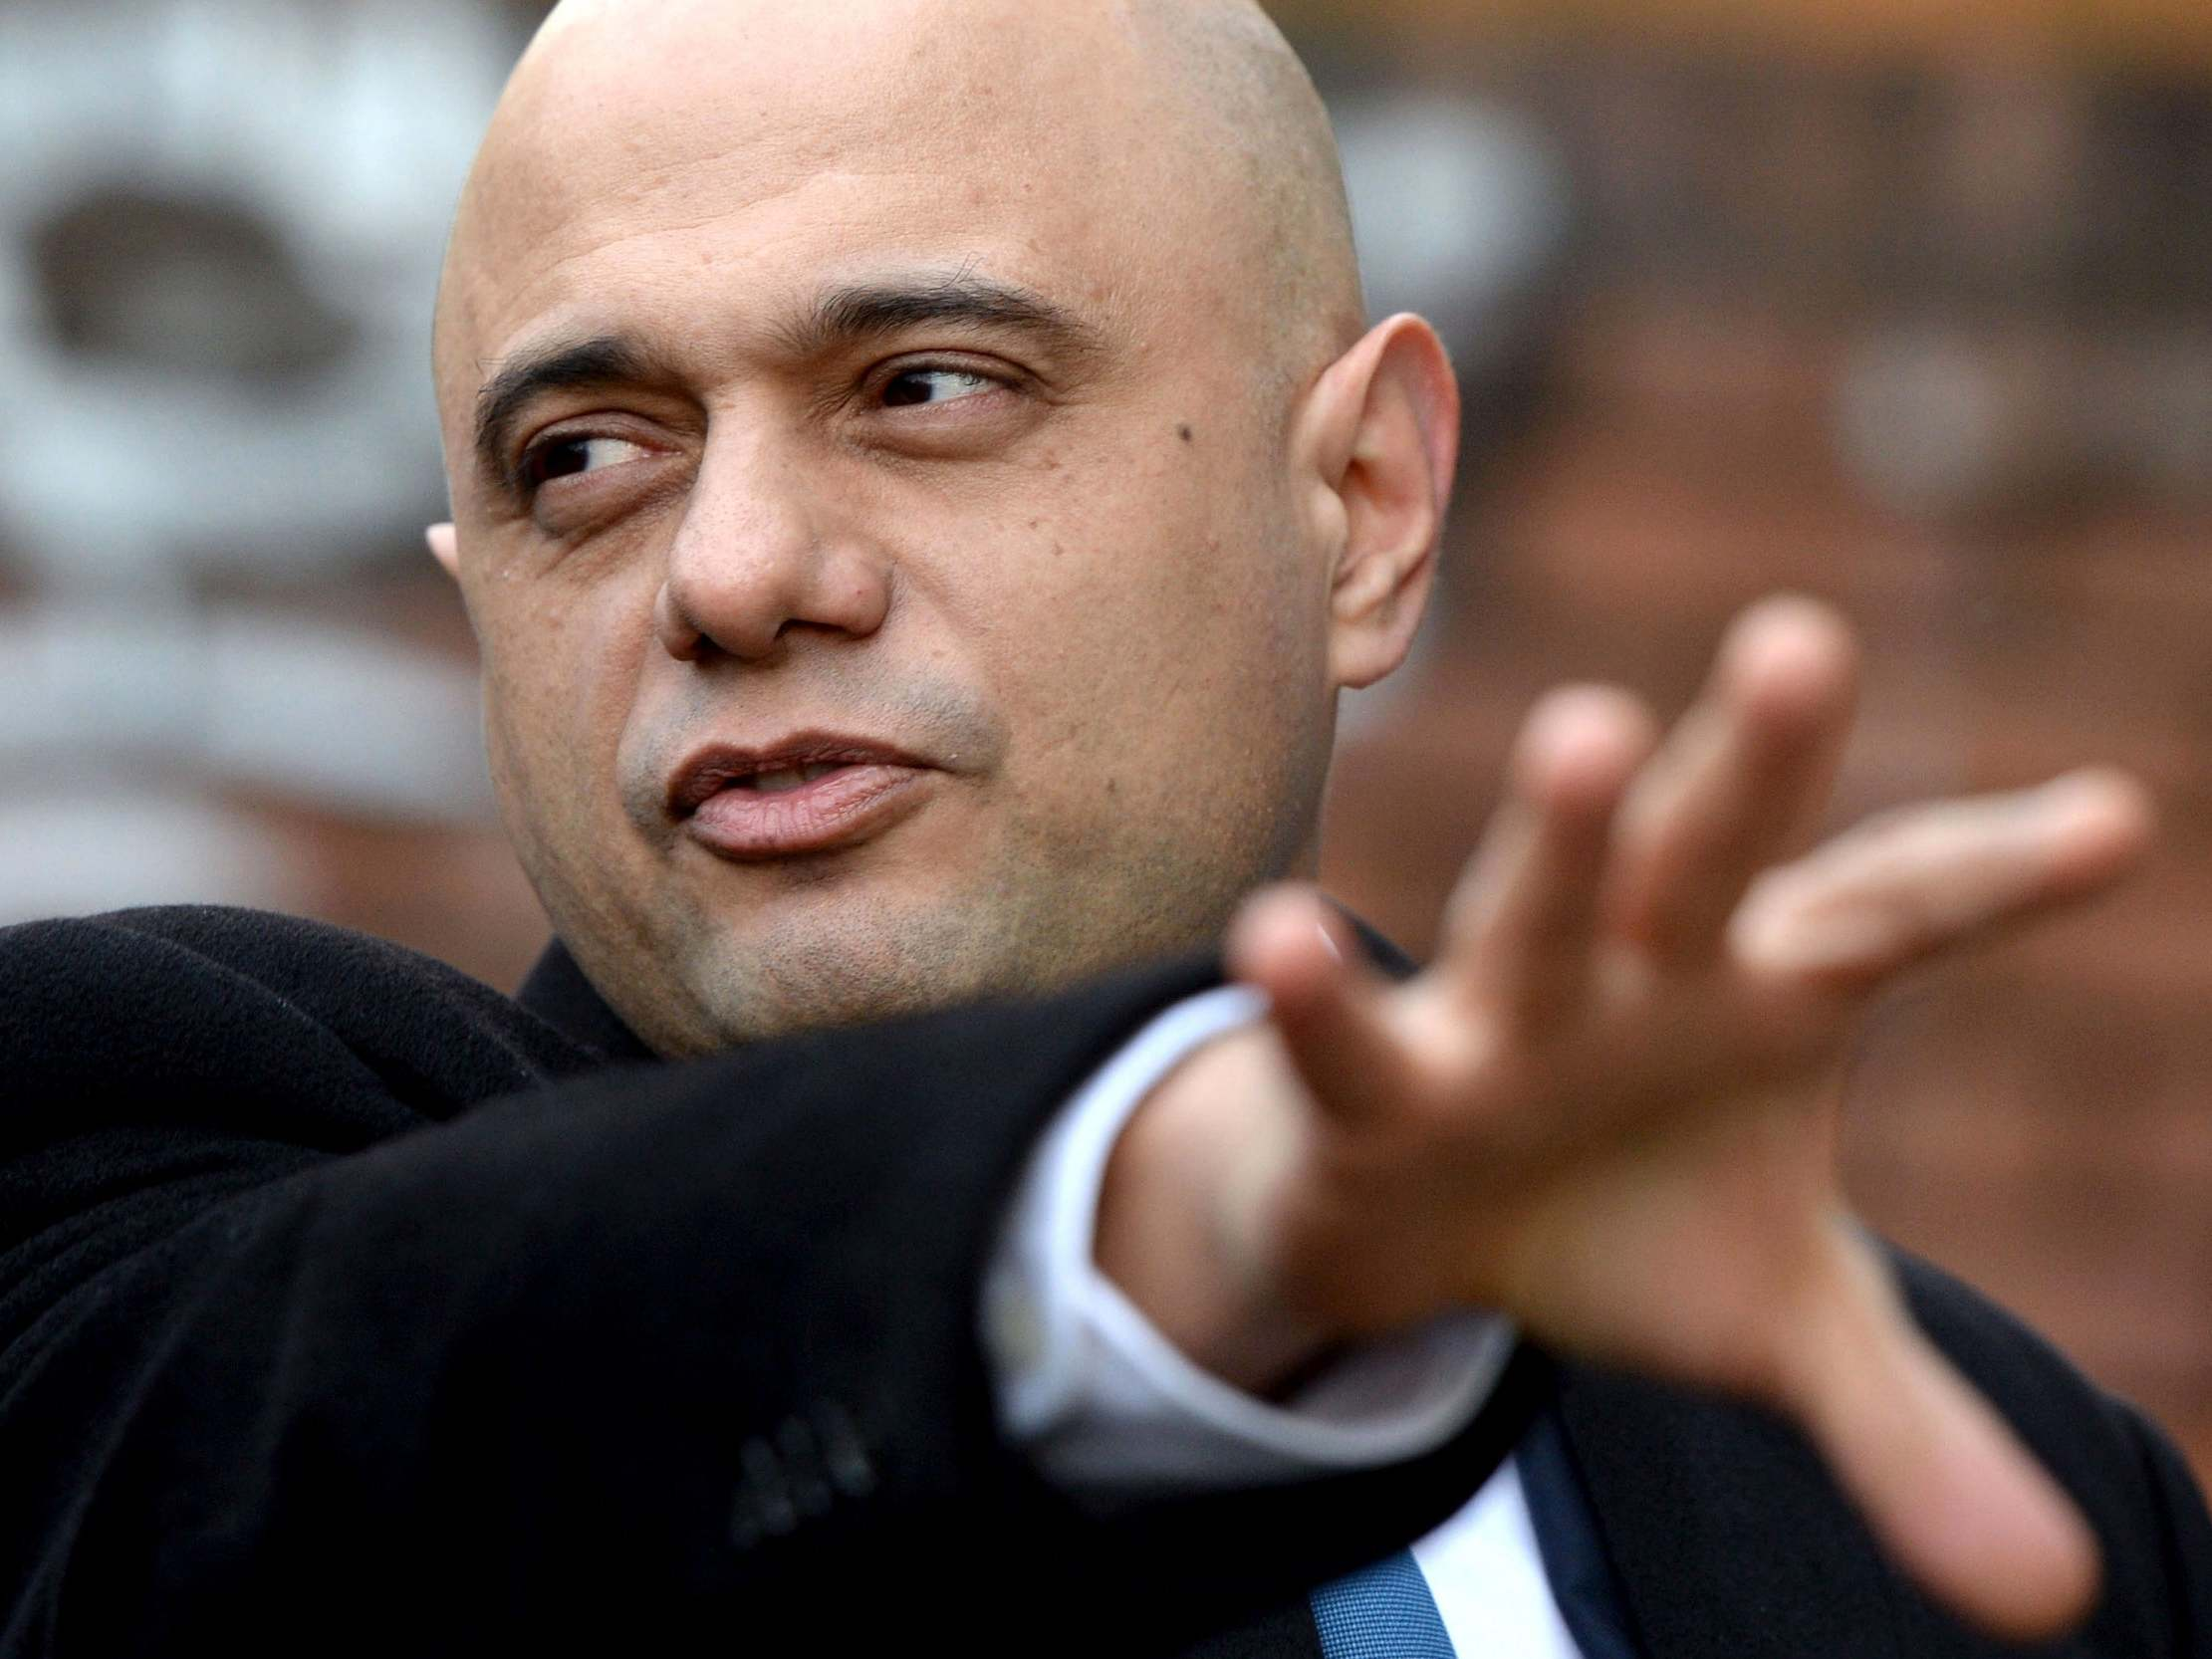 Sajid Javid criticised for false claim UK 'already' has outline of trade agreement when talks yet to start